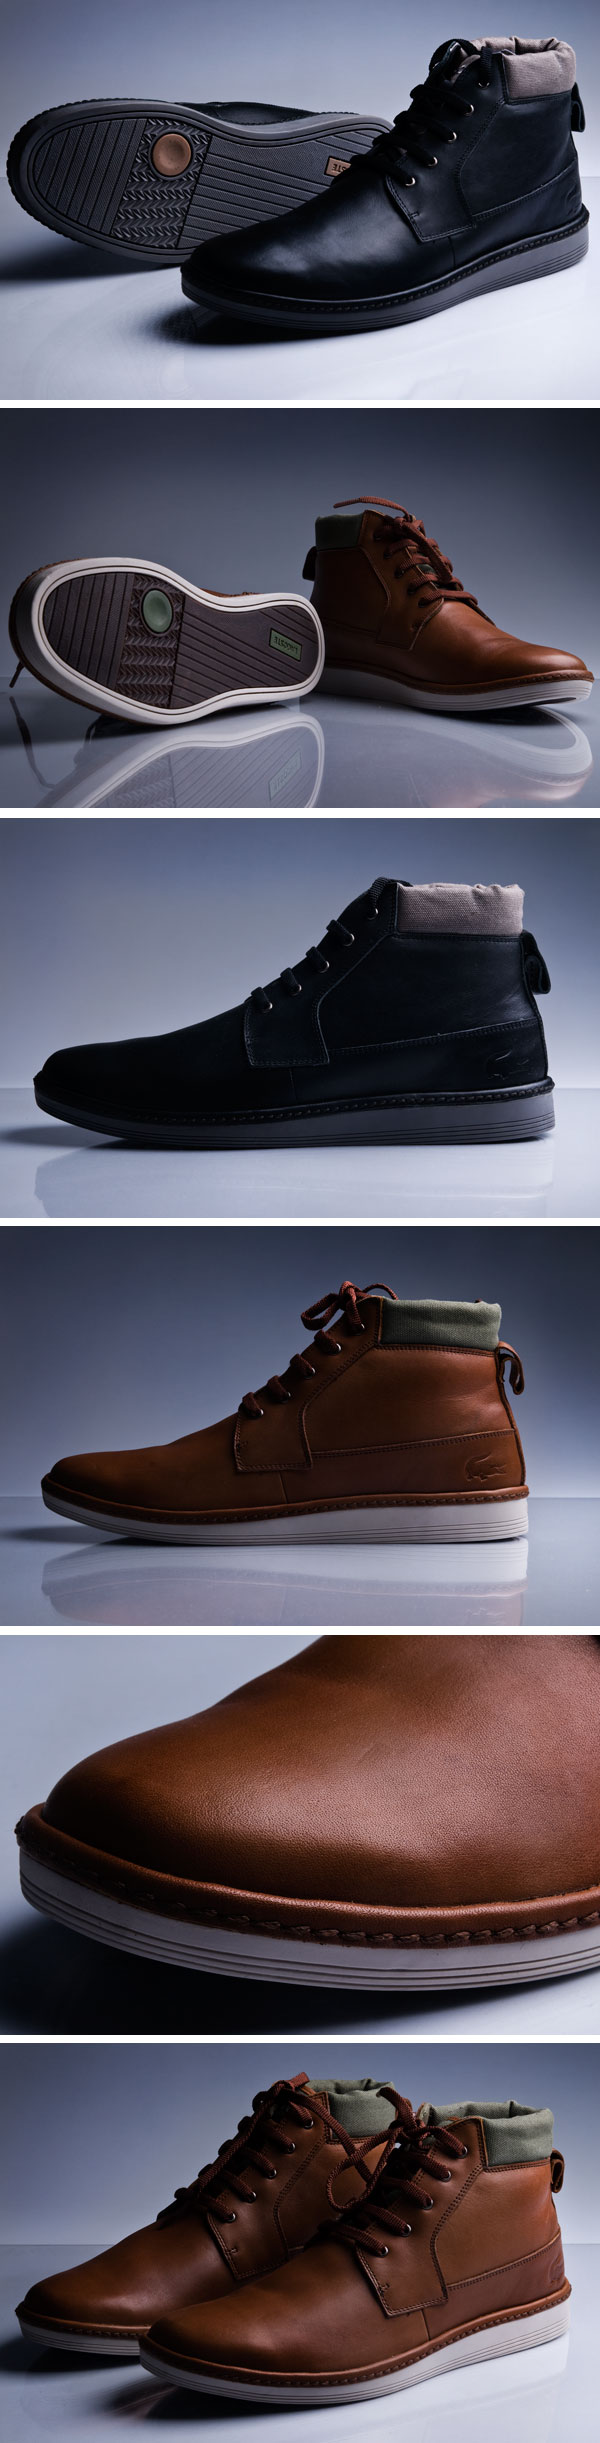 lacoste-boot